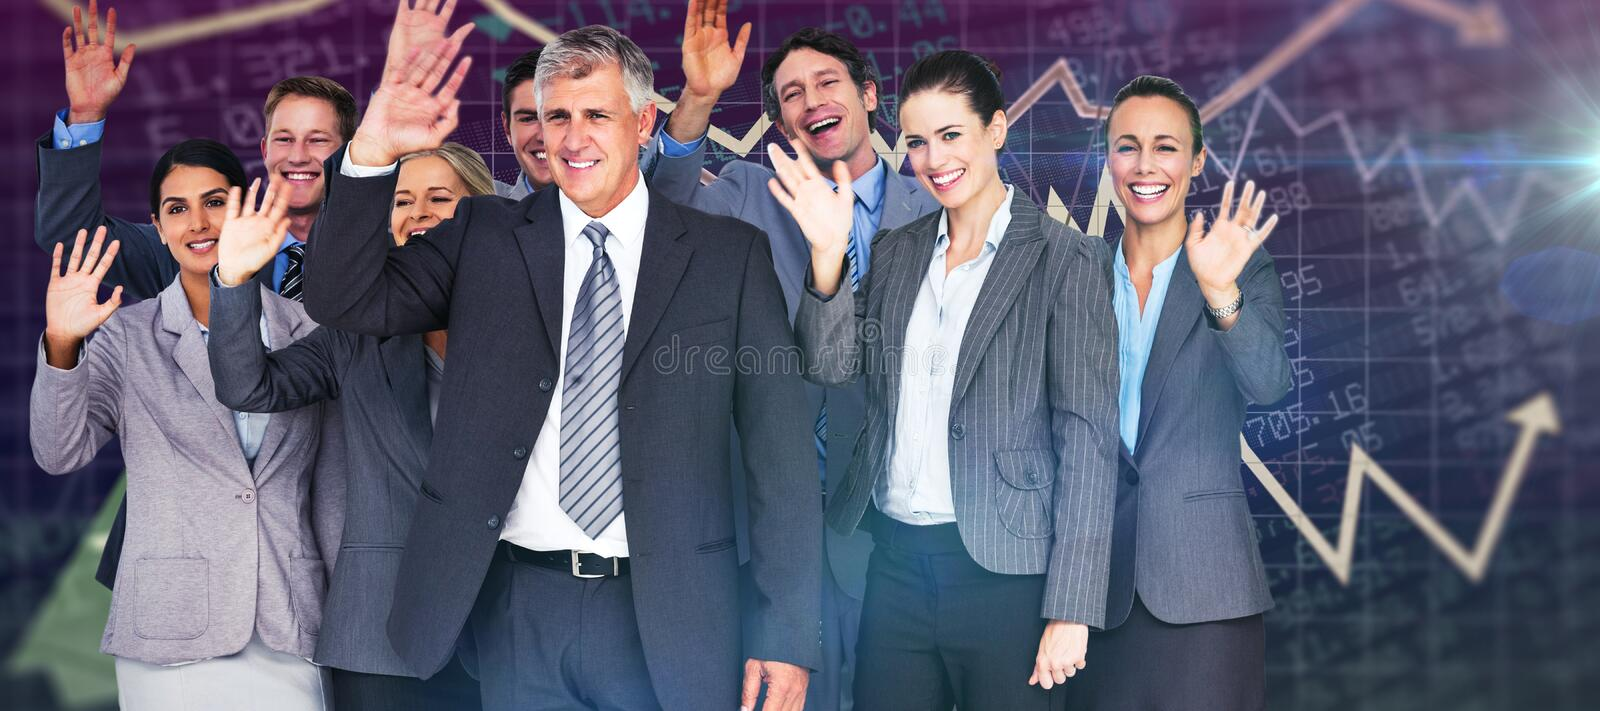 Download Composite Image Of Smiling Business Team Waving At Camera Stock Image - Image of front, attractive: 57816099